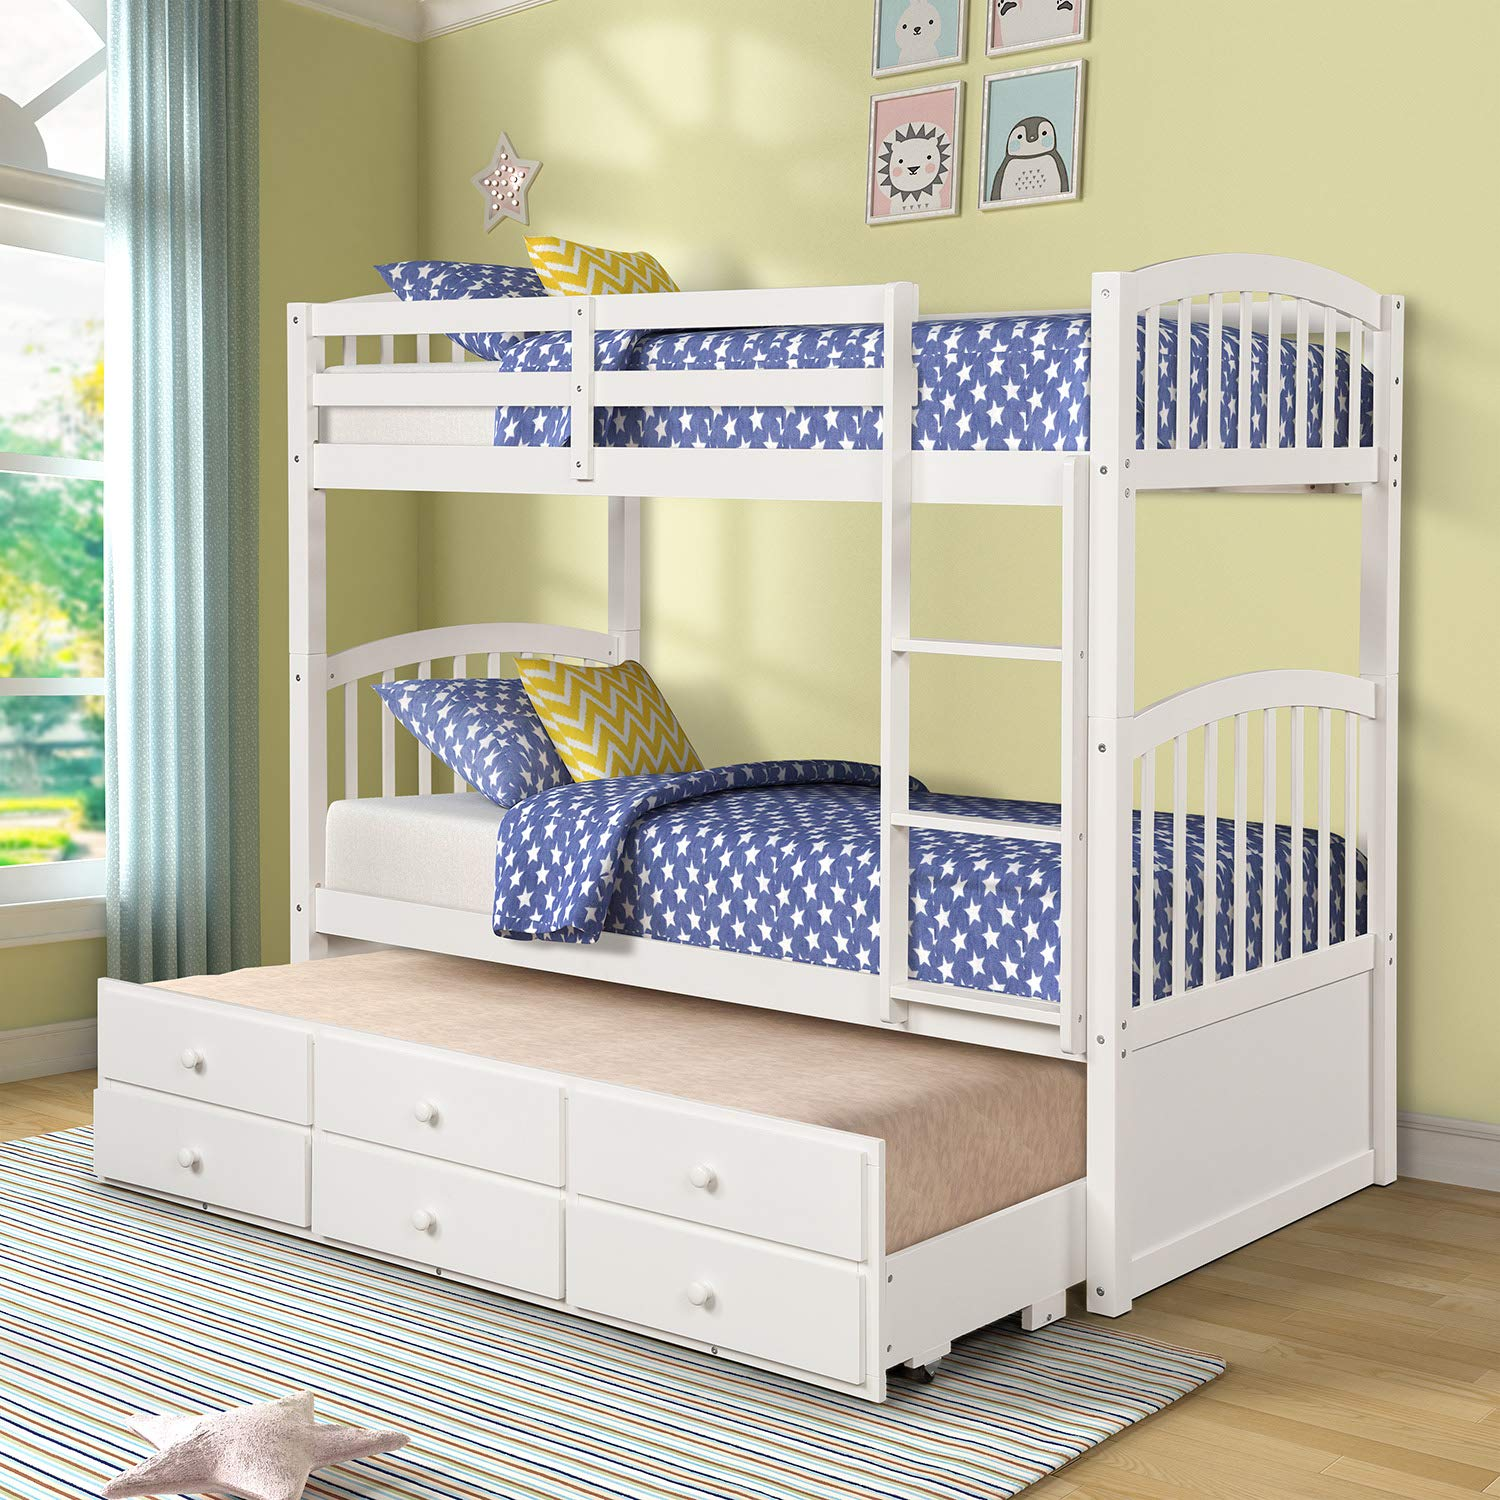 Twin Over Twin Bunk Bed Convertible With Trundle For Kids Weyoung Wooden Bunk Bed Frame With 3 Storage Drawers For Bedroom Guest Room White Buy Online In Guernsey At Guernsey Desertcart Com Productid